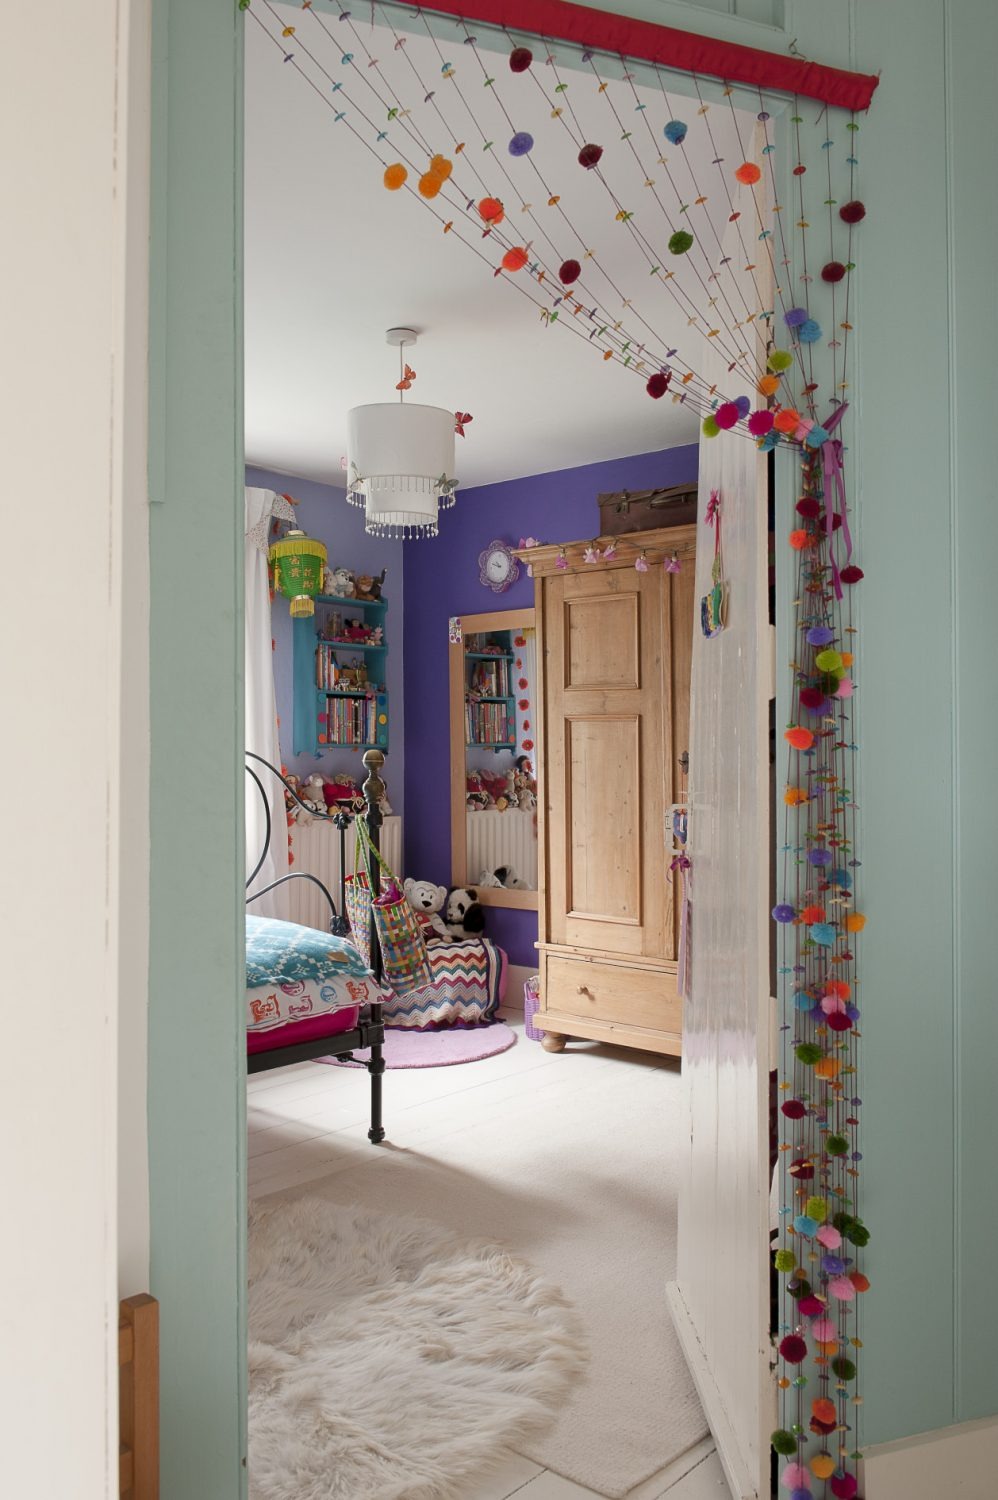 Daughter Gabrielle's room is just as colourful as her sibling Dominic's and features a bold floral mural on one wall